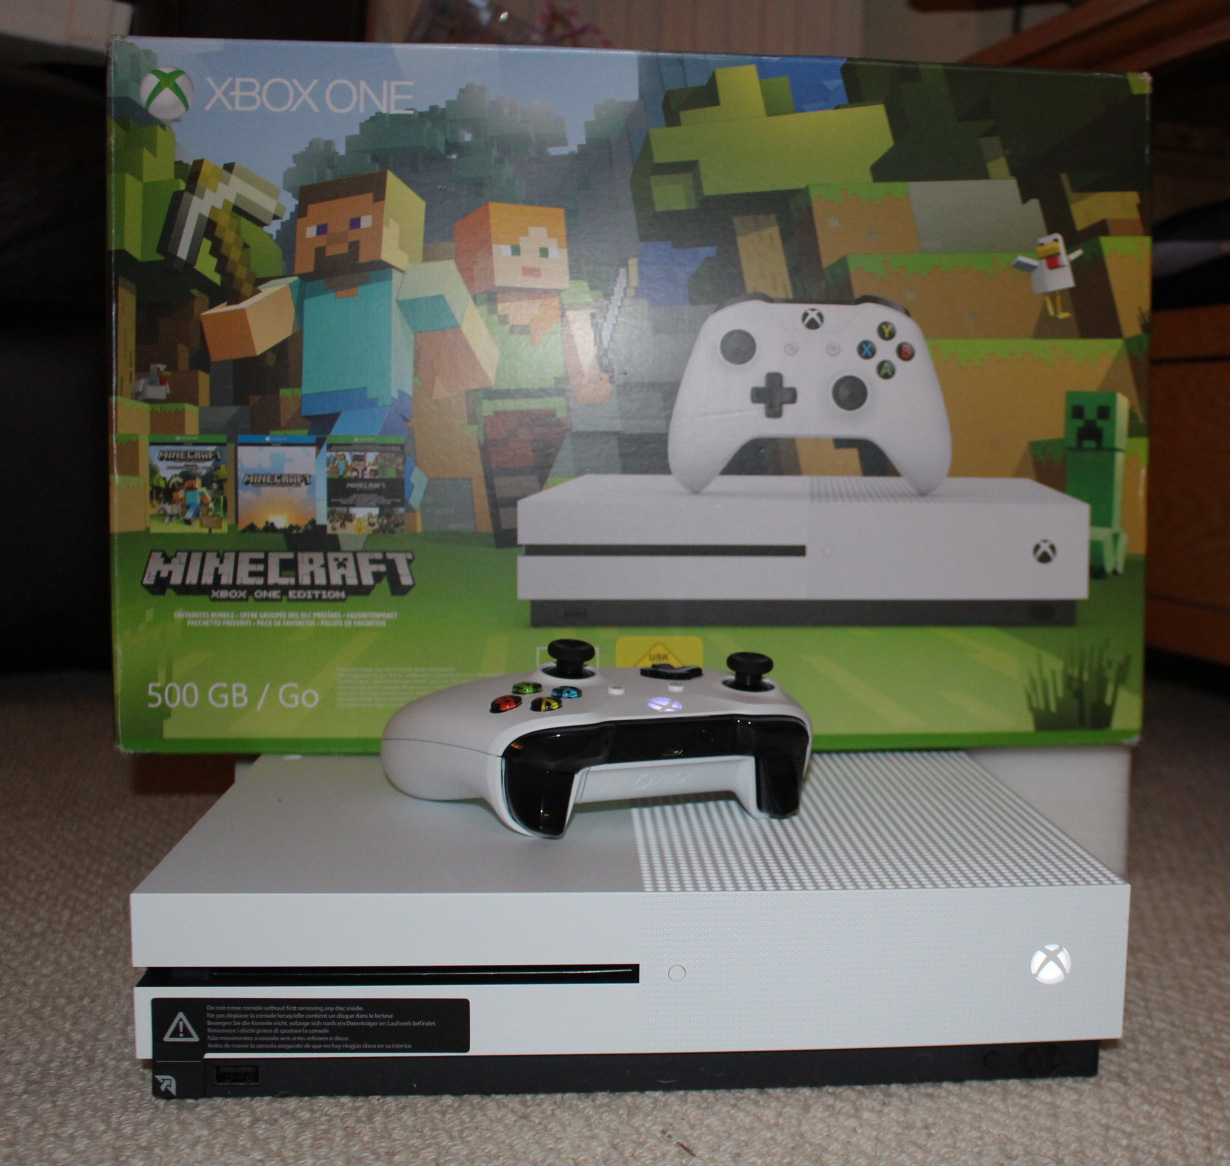 Xbox, Xbox One S, Minecraft, games, gaming, revoiew, Xbox One S review